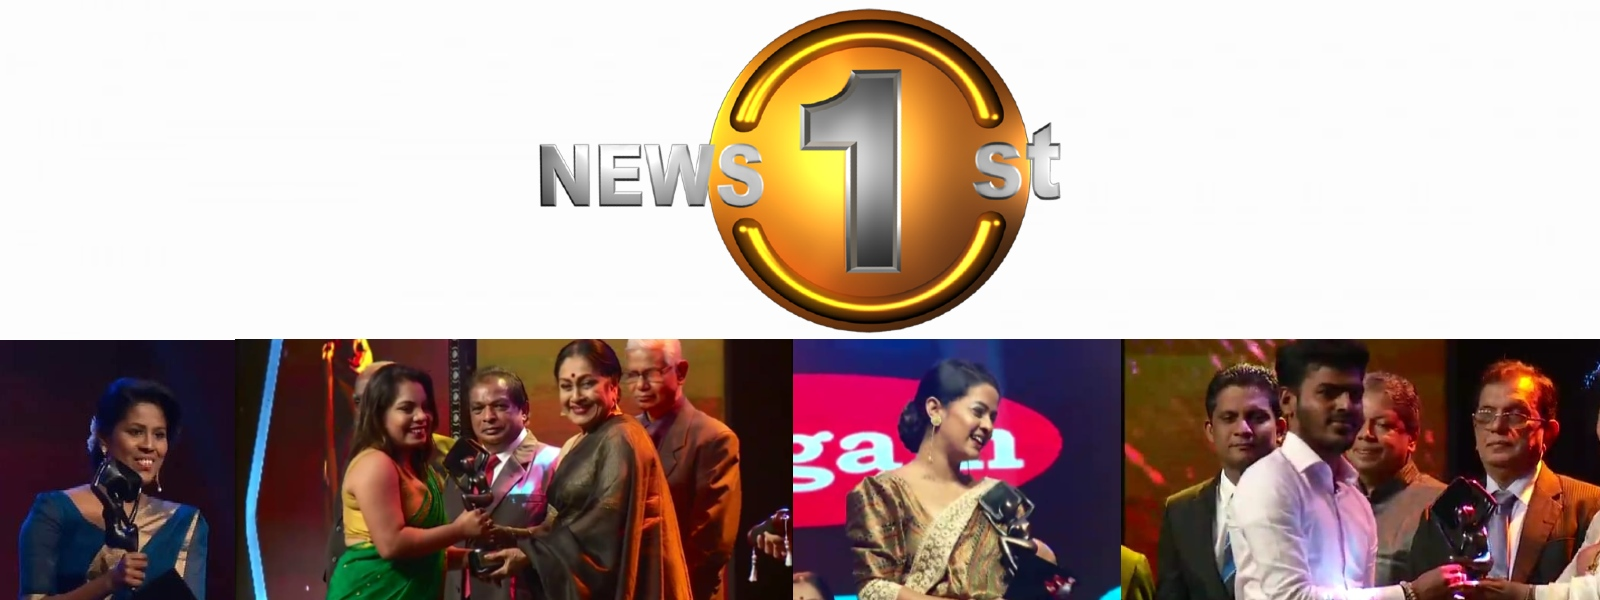 News 1st clean sweep at the Raigam Awards 2019